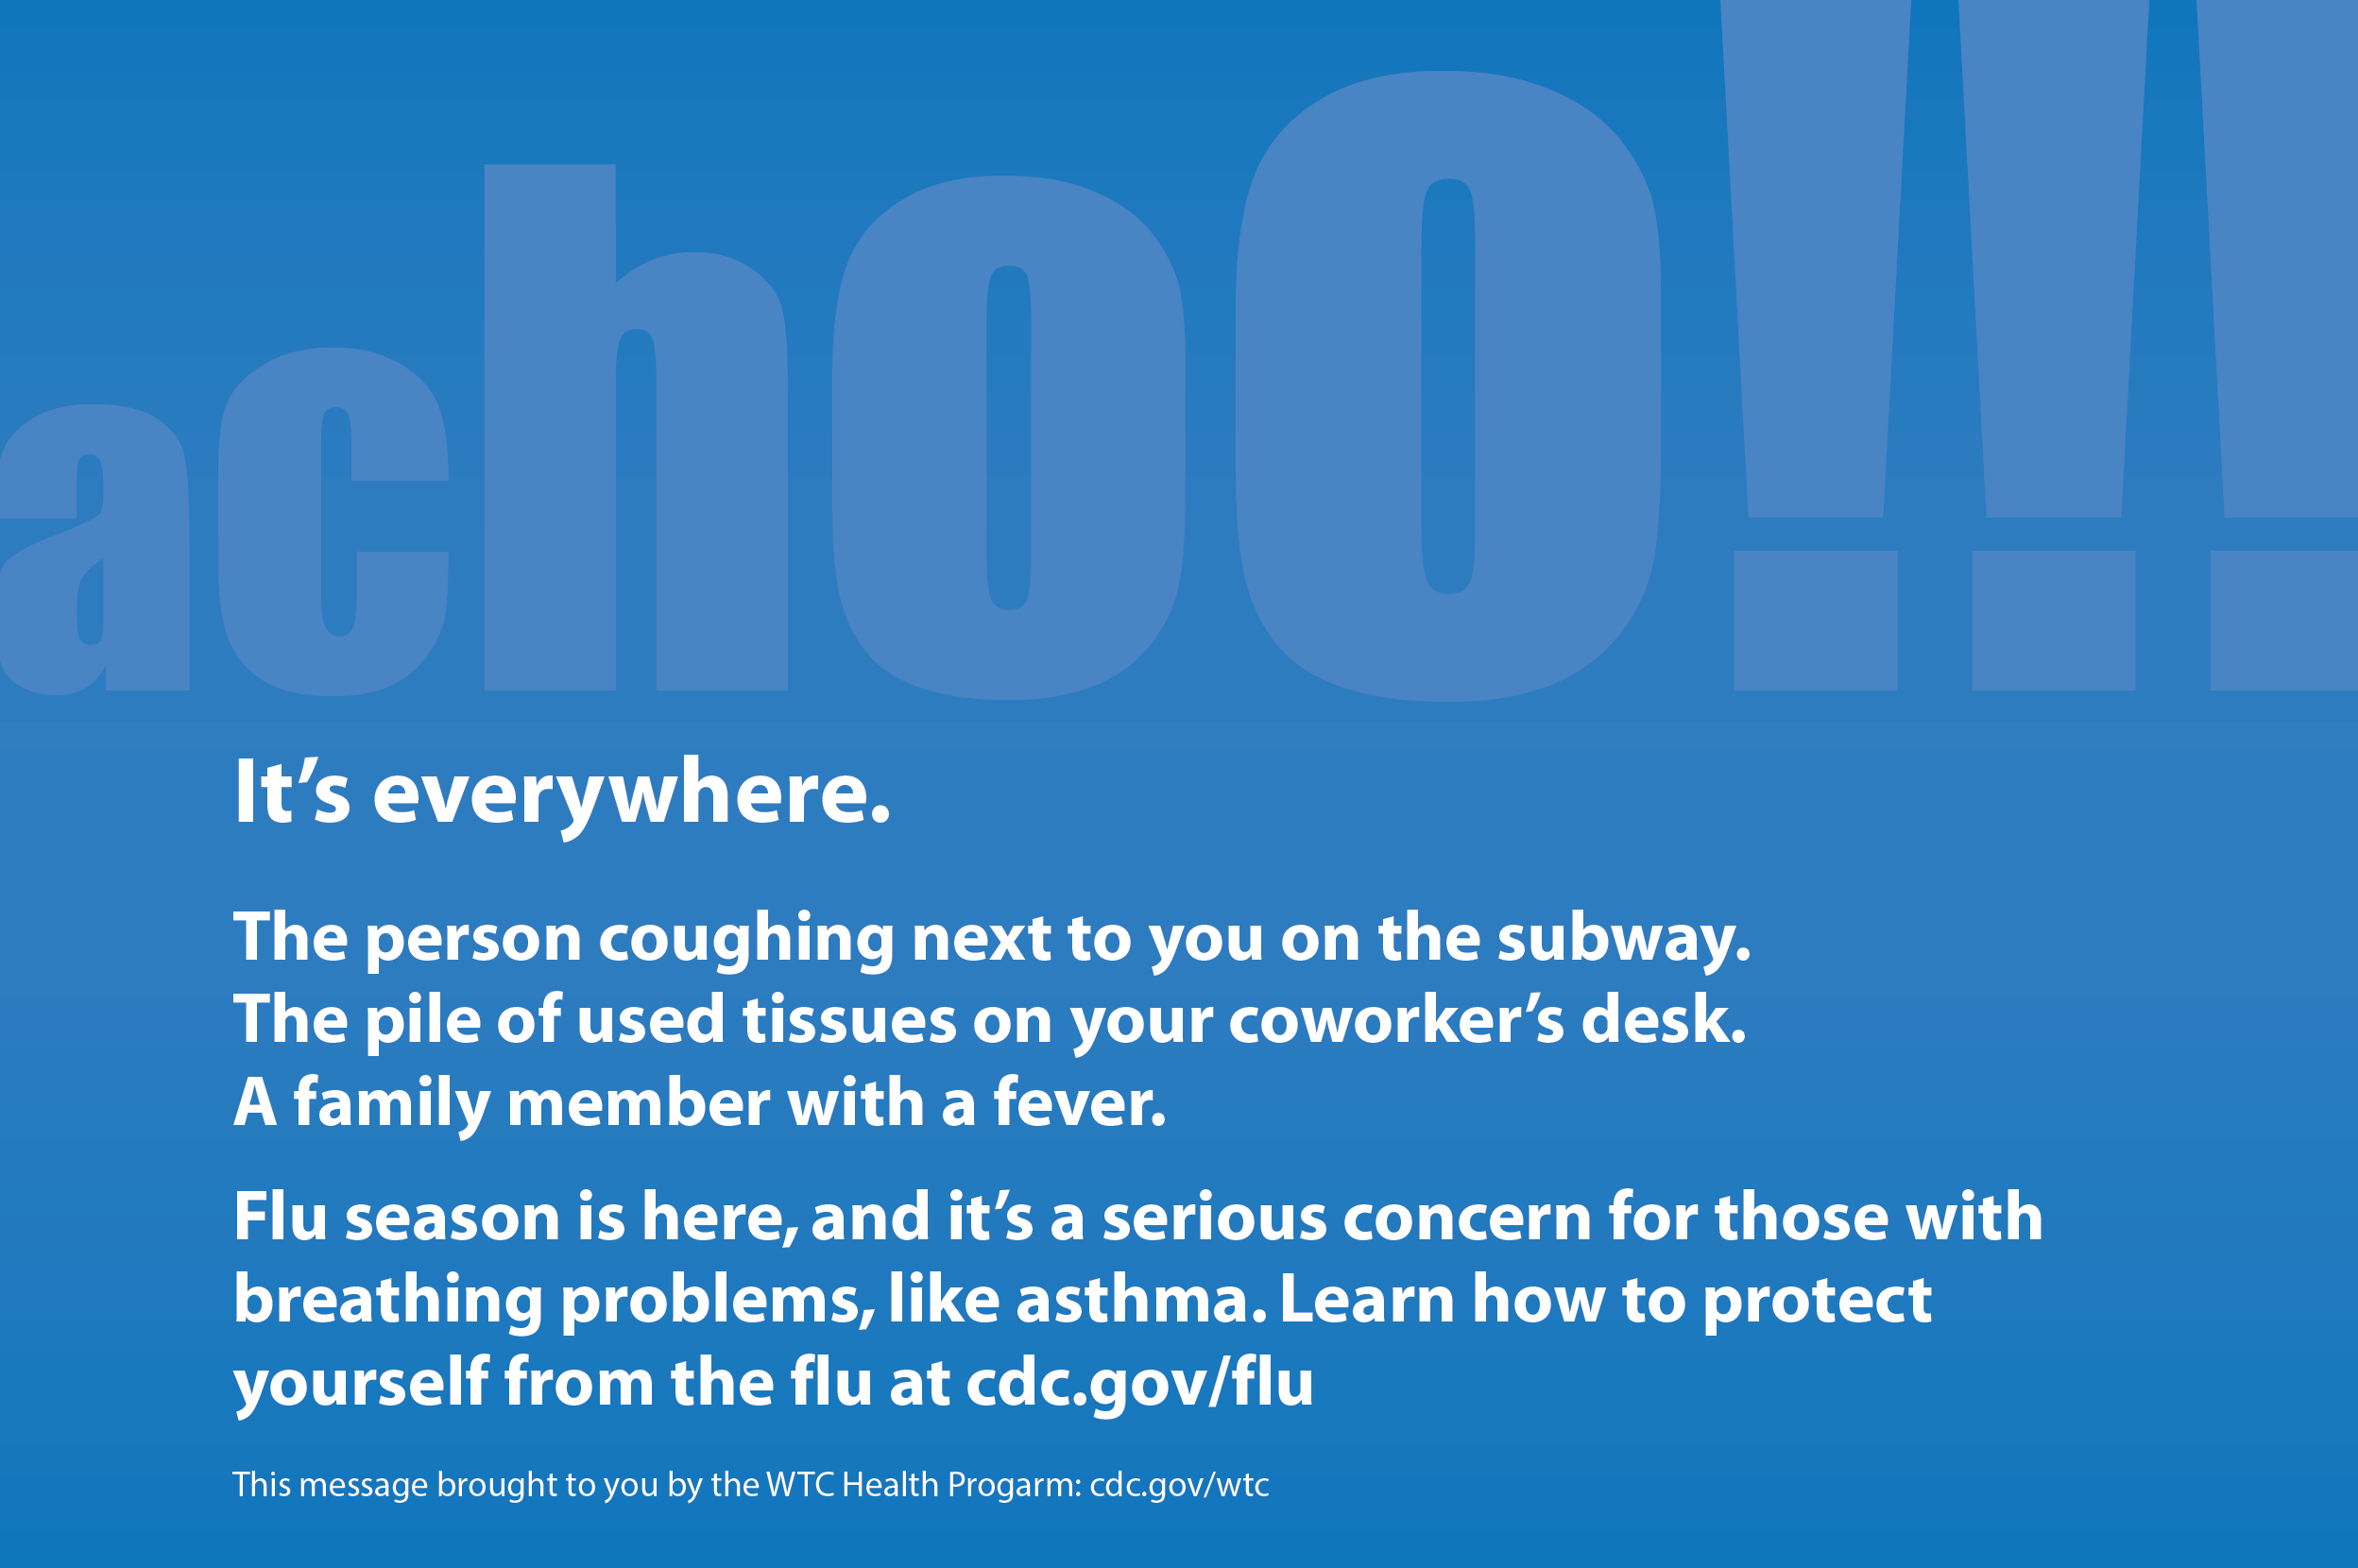 Flu season is a serious concern for those with breathing problems.  Learn how to protect yourself at cdc.gov/flu